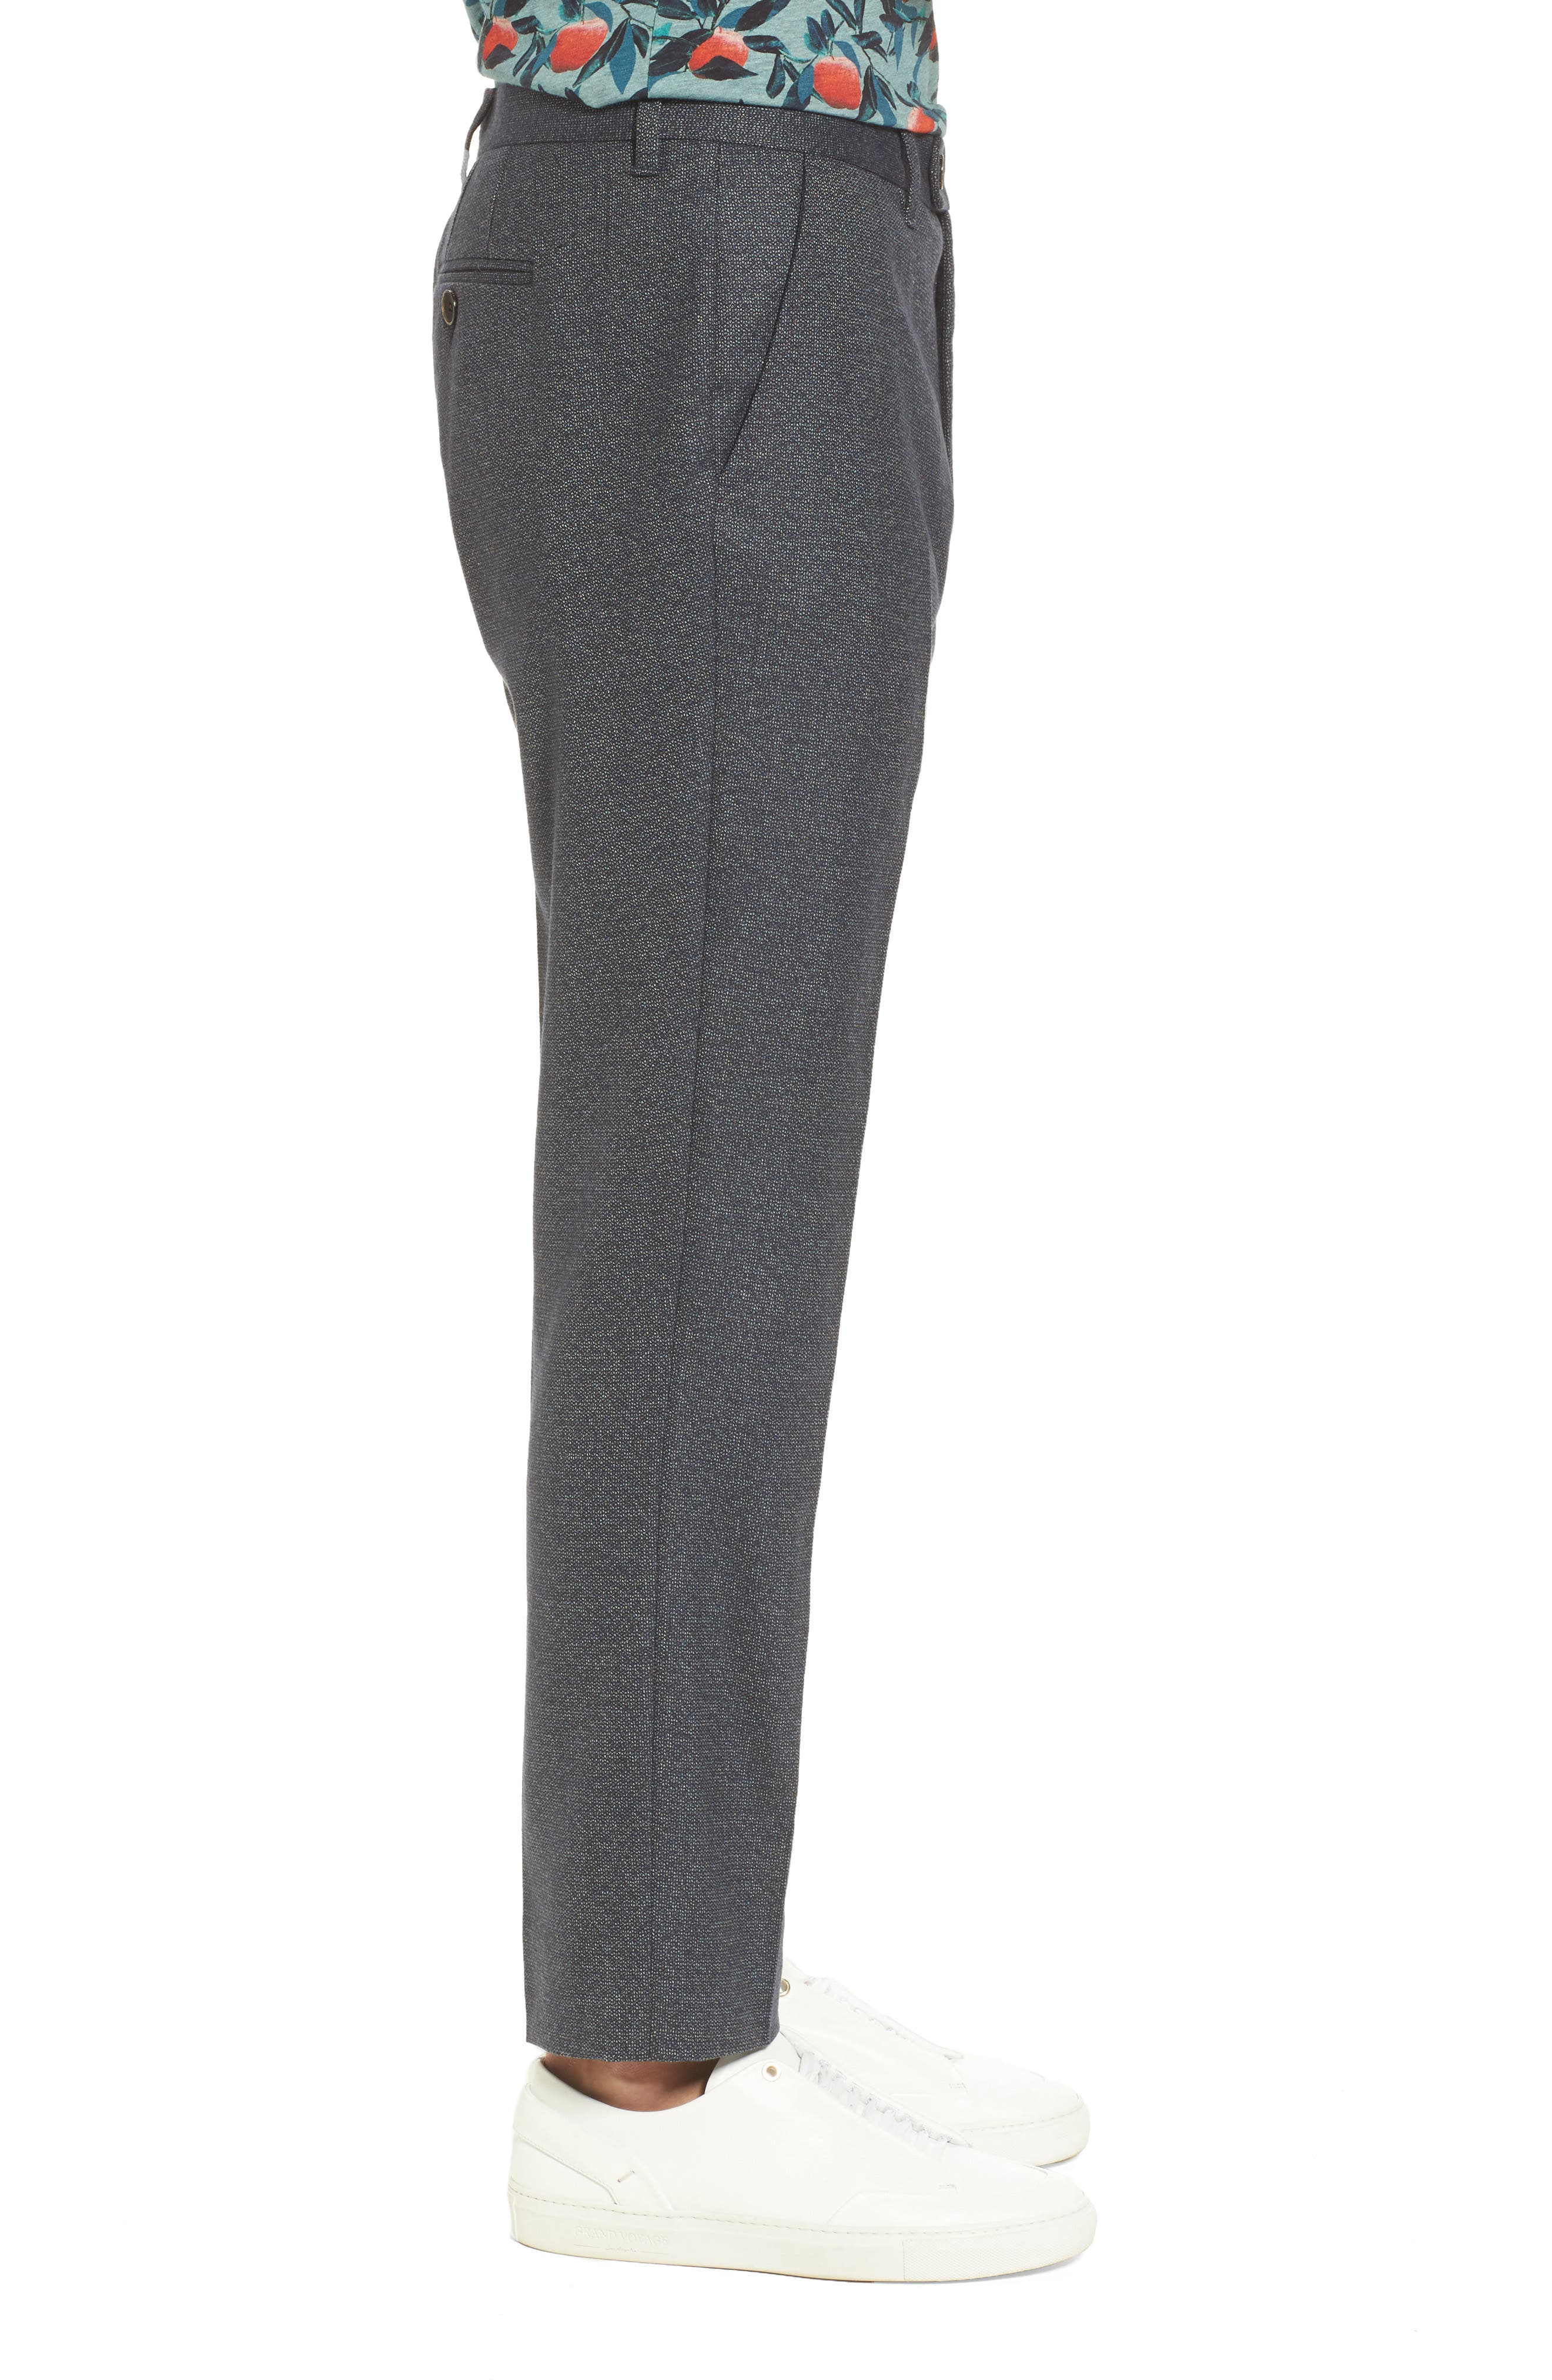 Beektro Trim Fit Trousers,                             Alternate thumbnail 3, color,                             Navy